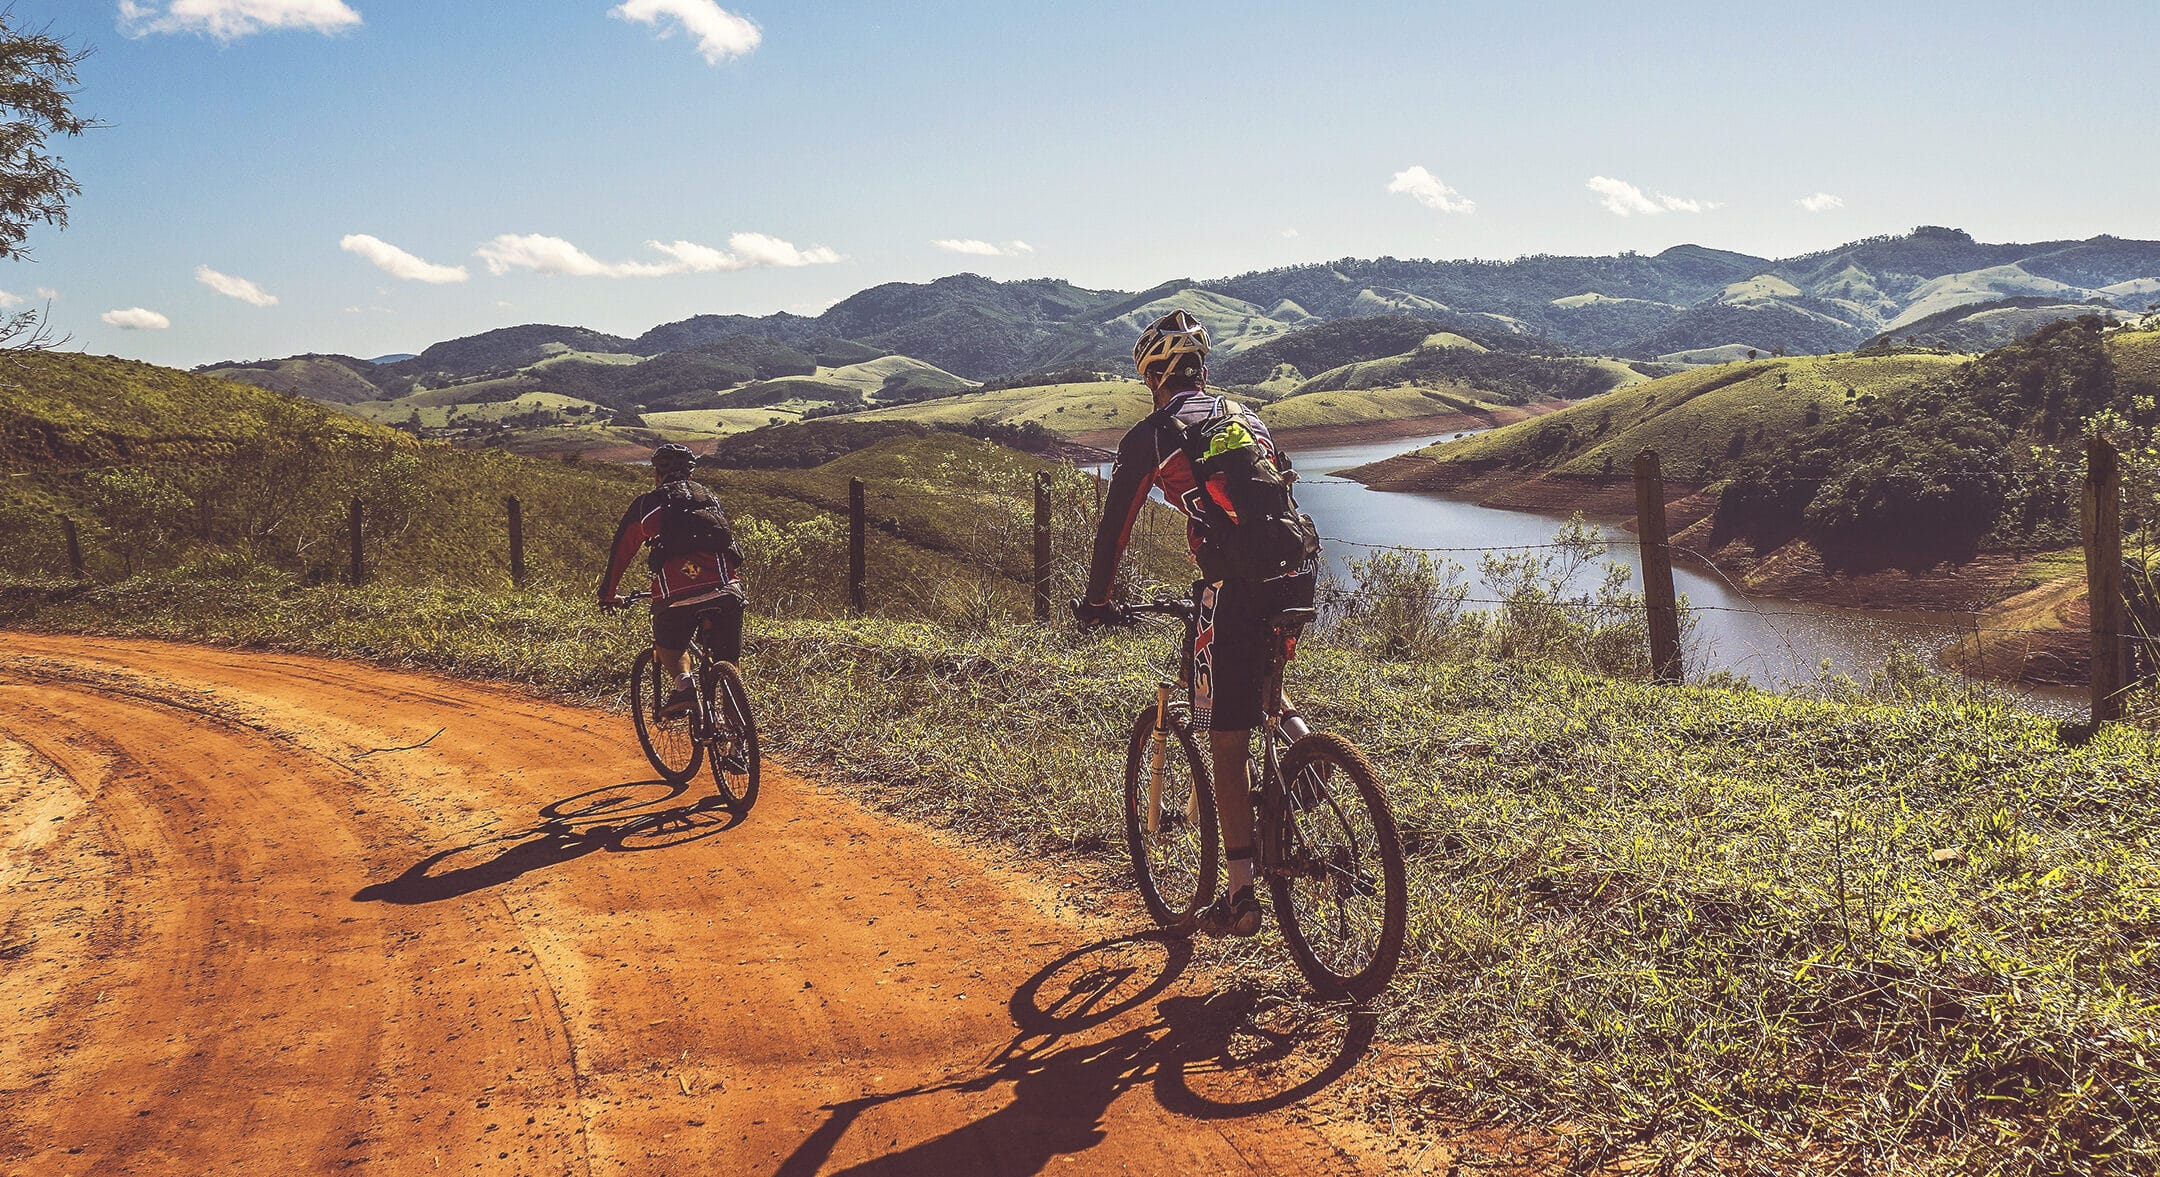 Two mountain bikers riding down a hill, discussing their mortgage options.